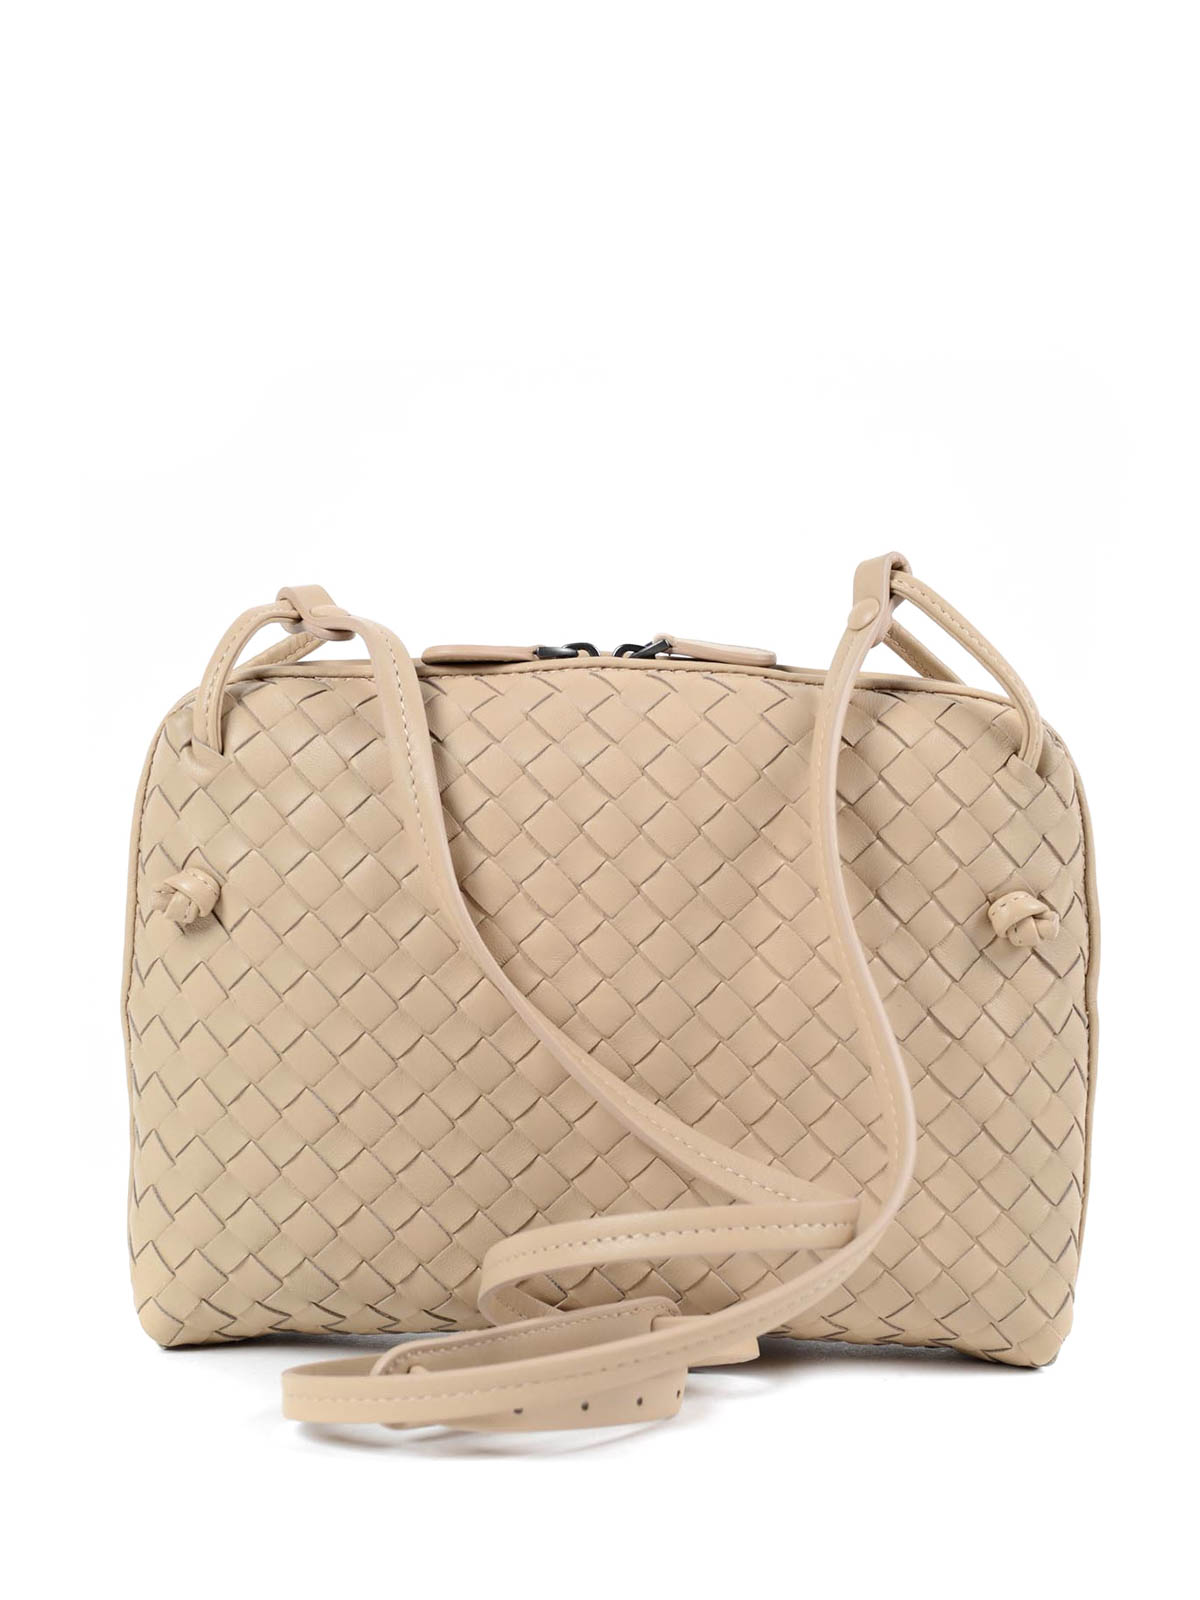 036aa26b5c bottega veneta shop online - Woven leather messenger bag by Bottega Veneta  - cross body bags